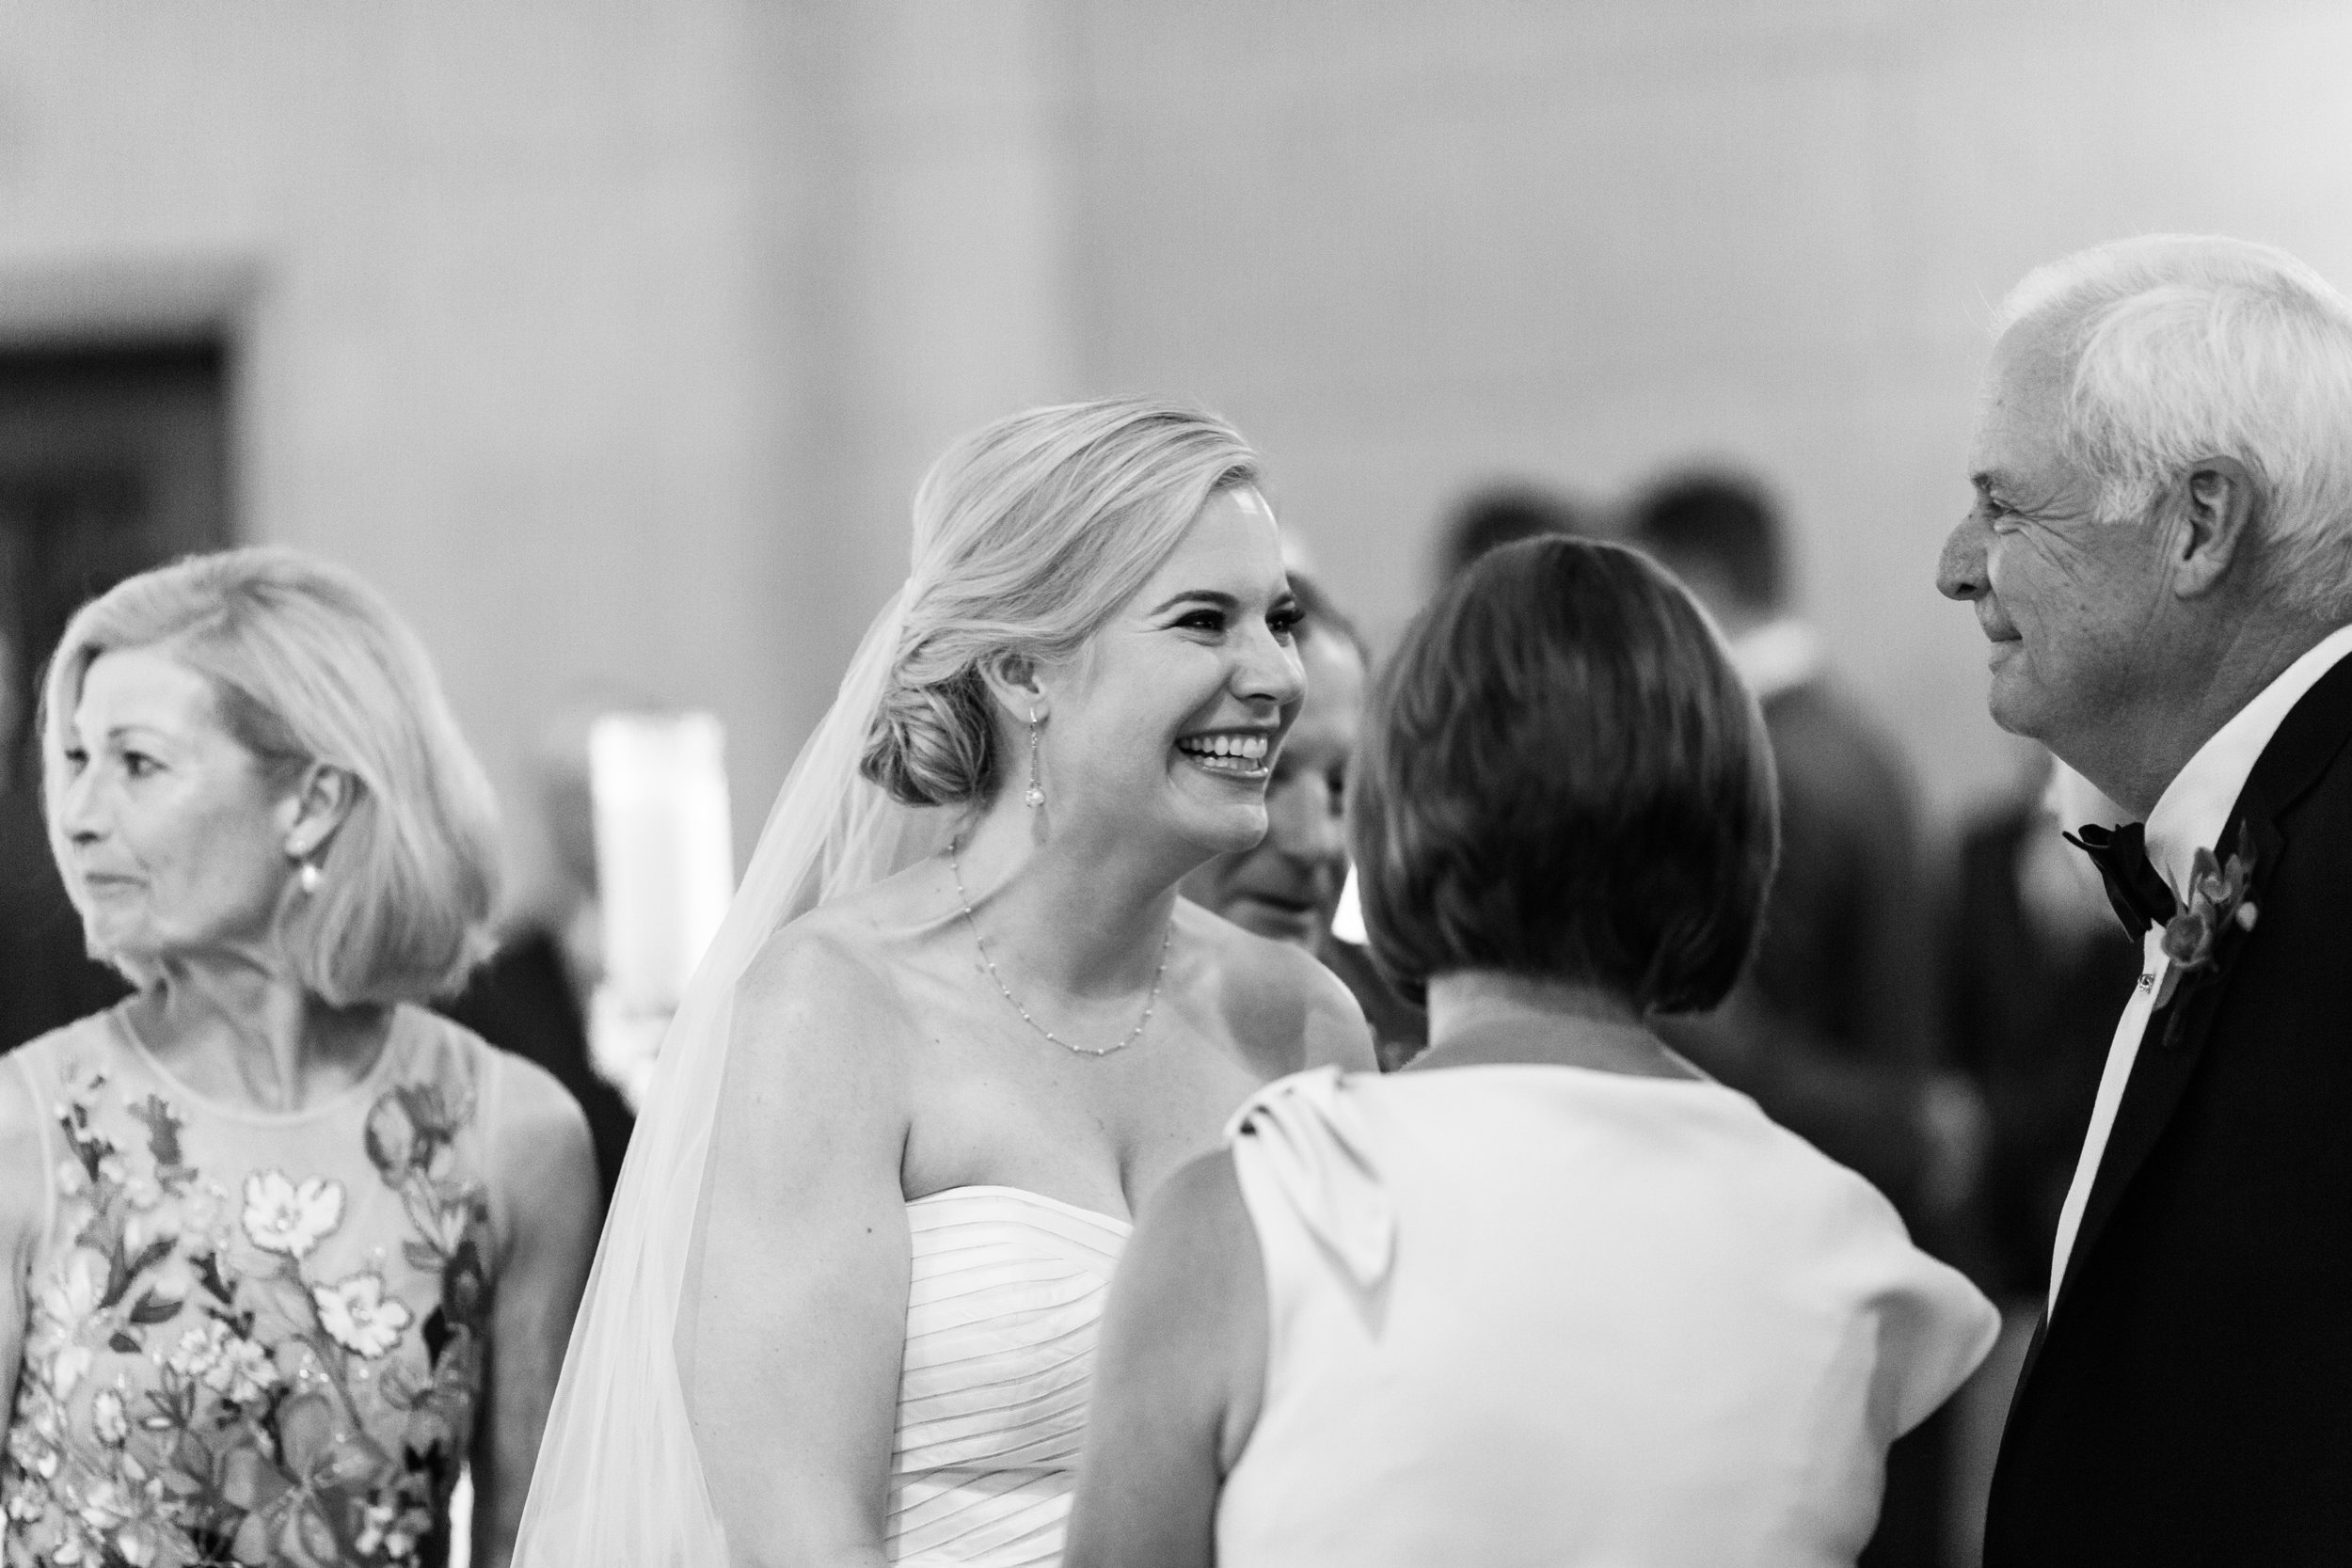 Wedding ceremony photography in Chicago